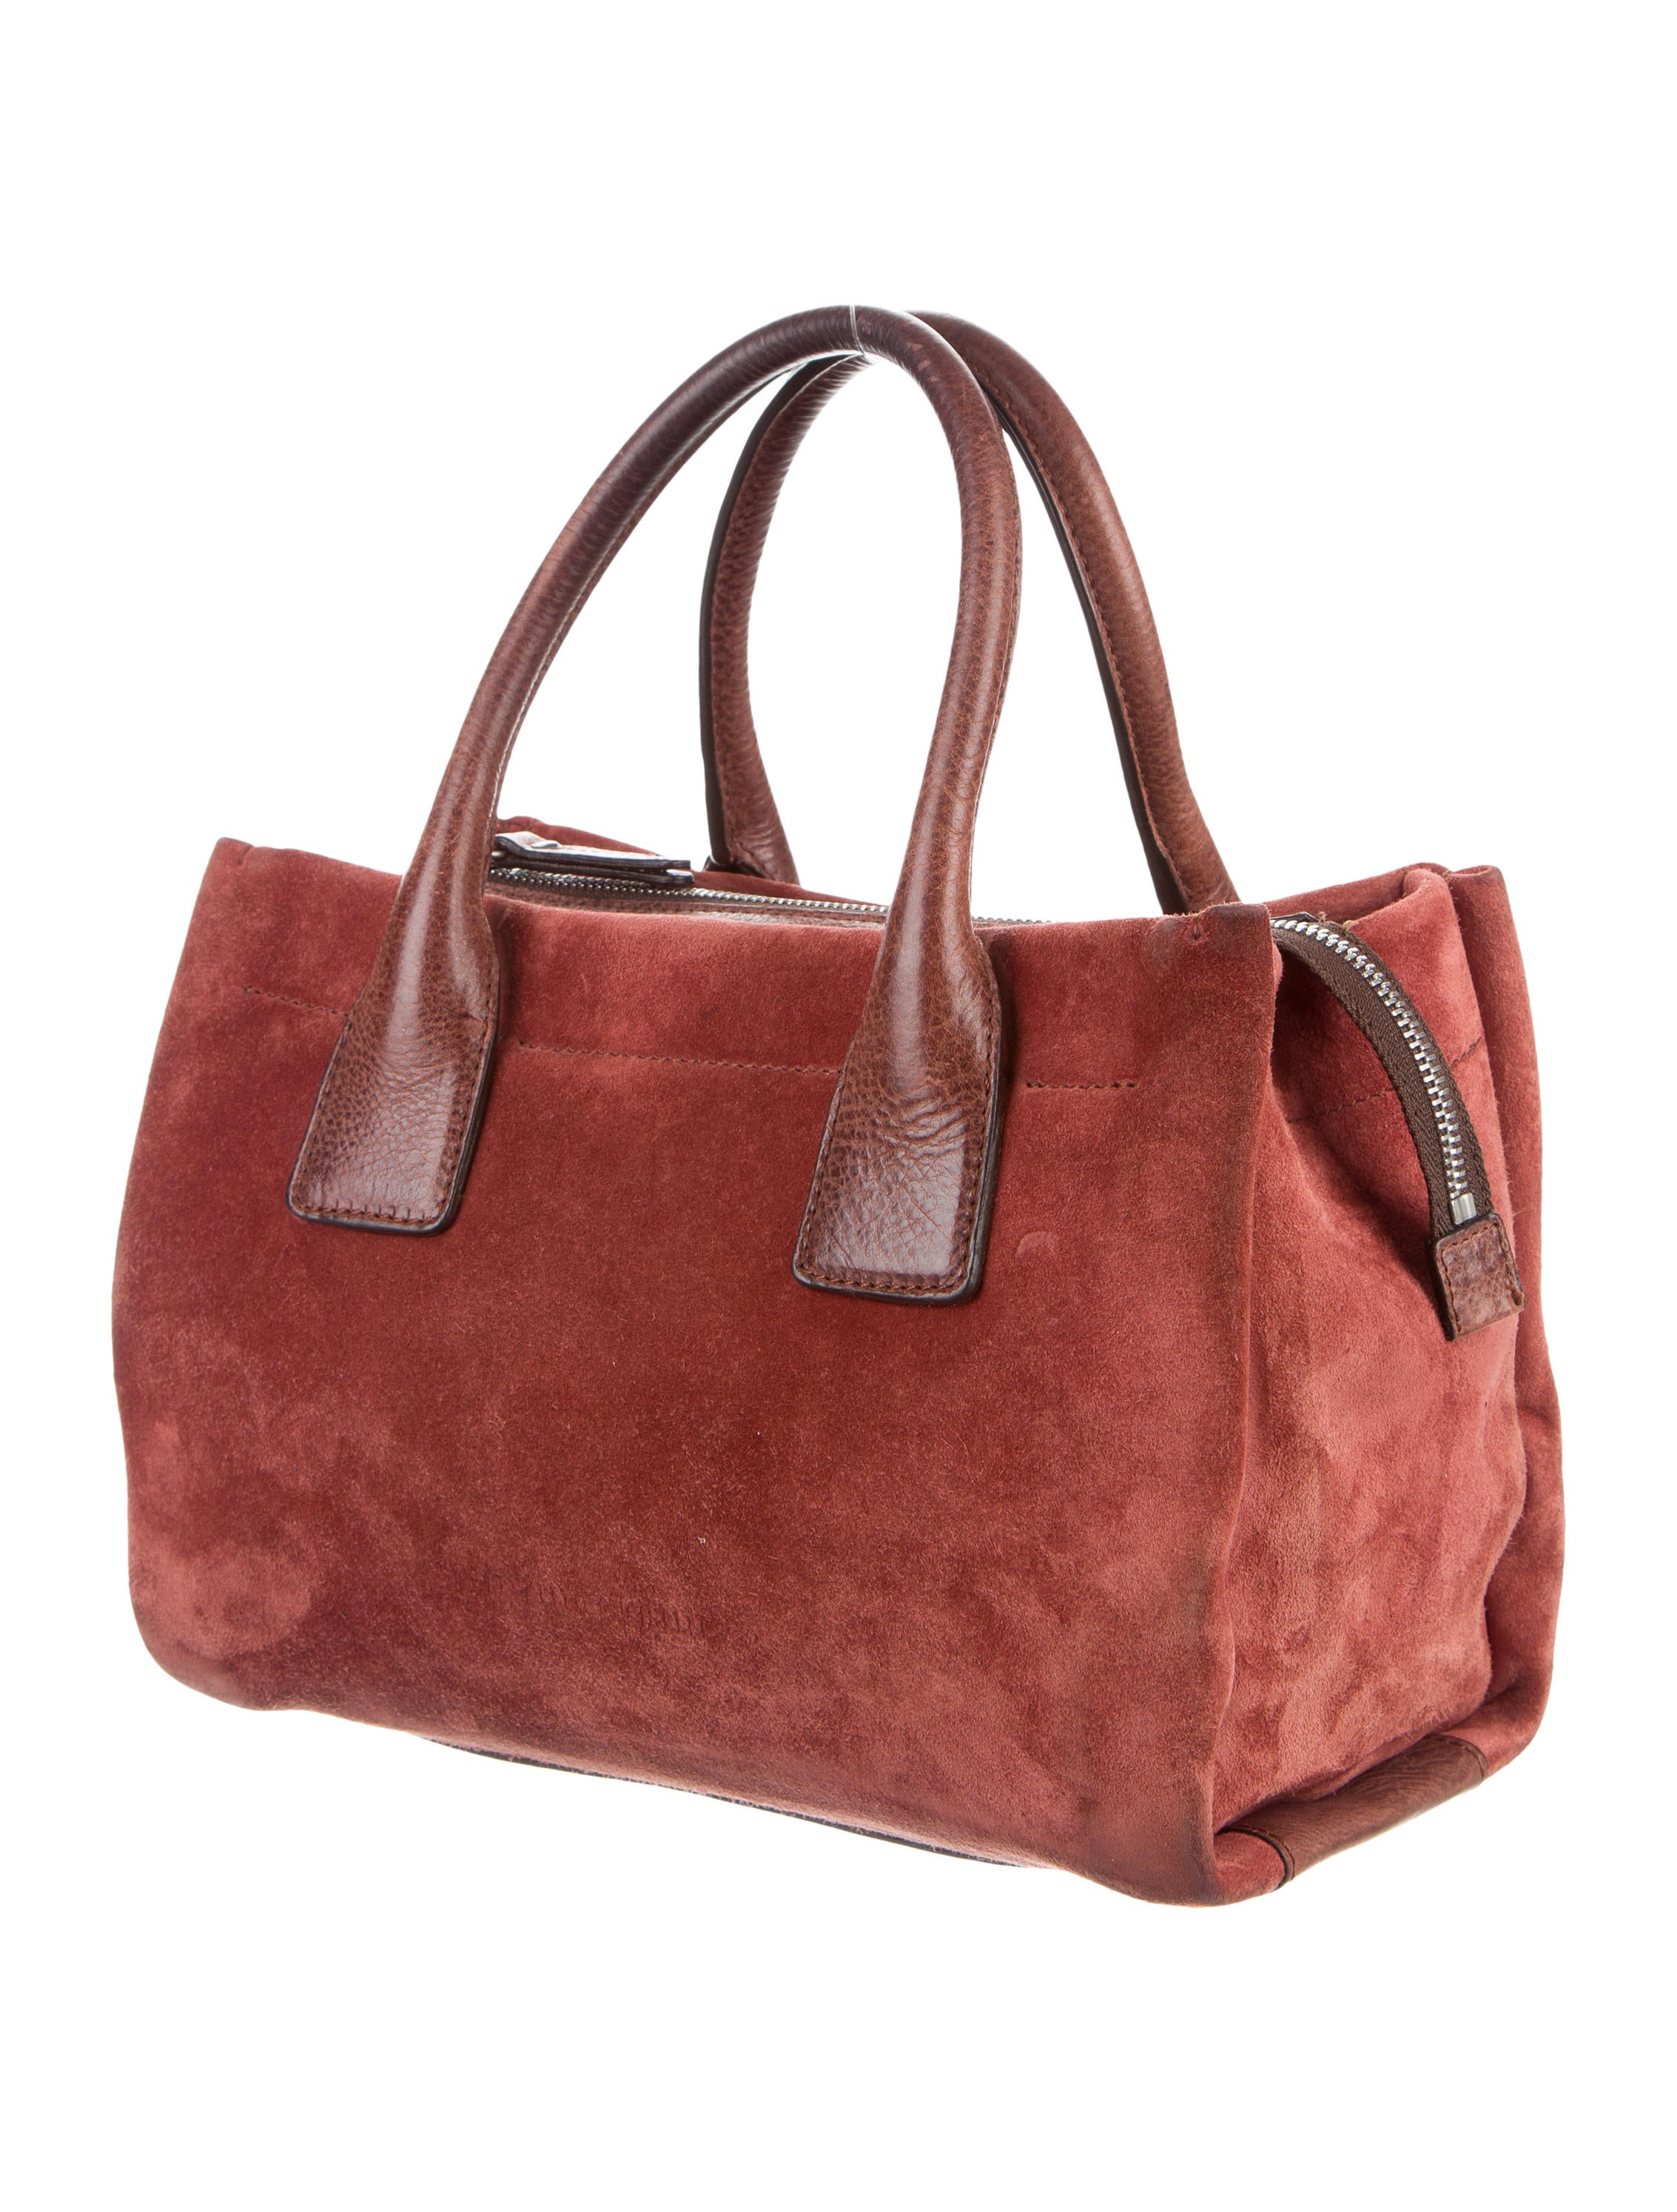 how to clean suede handbag